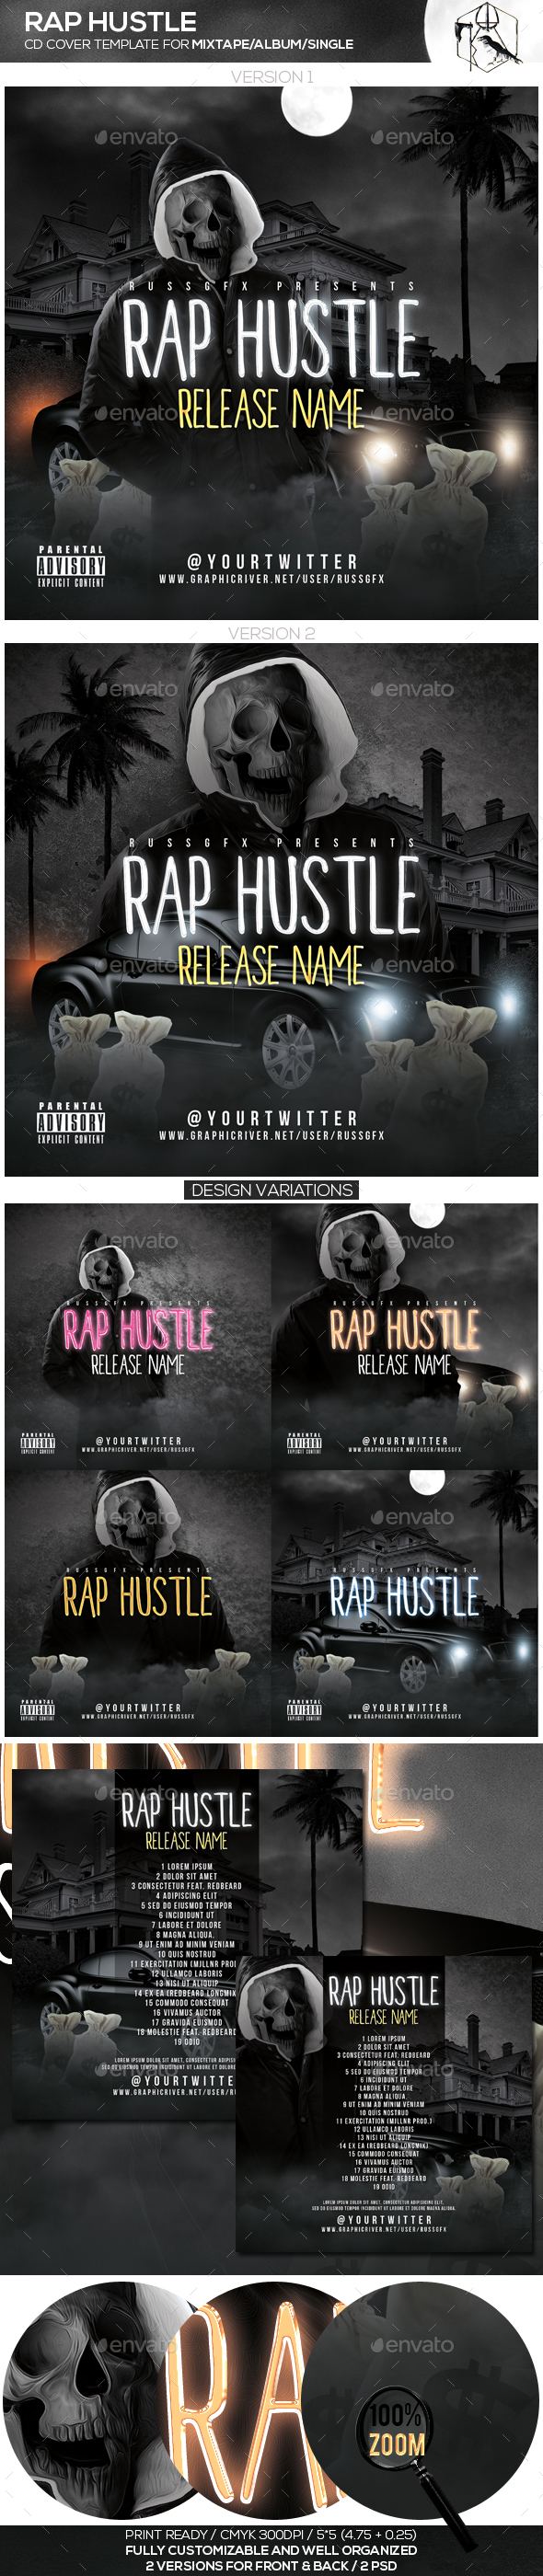 Rap Hustle PSD CD Mixtape Cover Template by russgfx | GraphicRiver